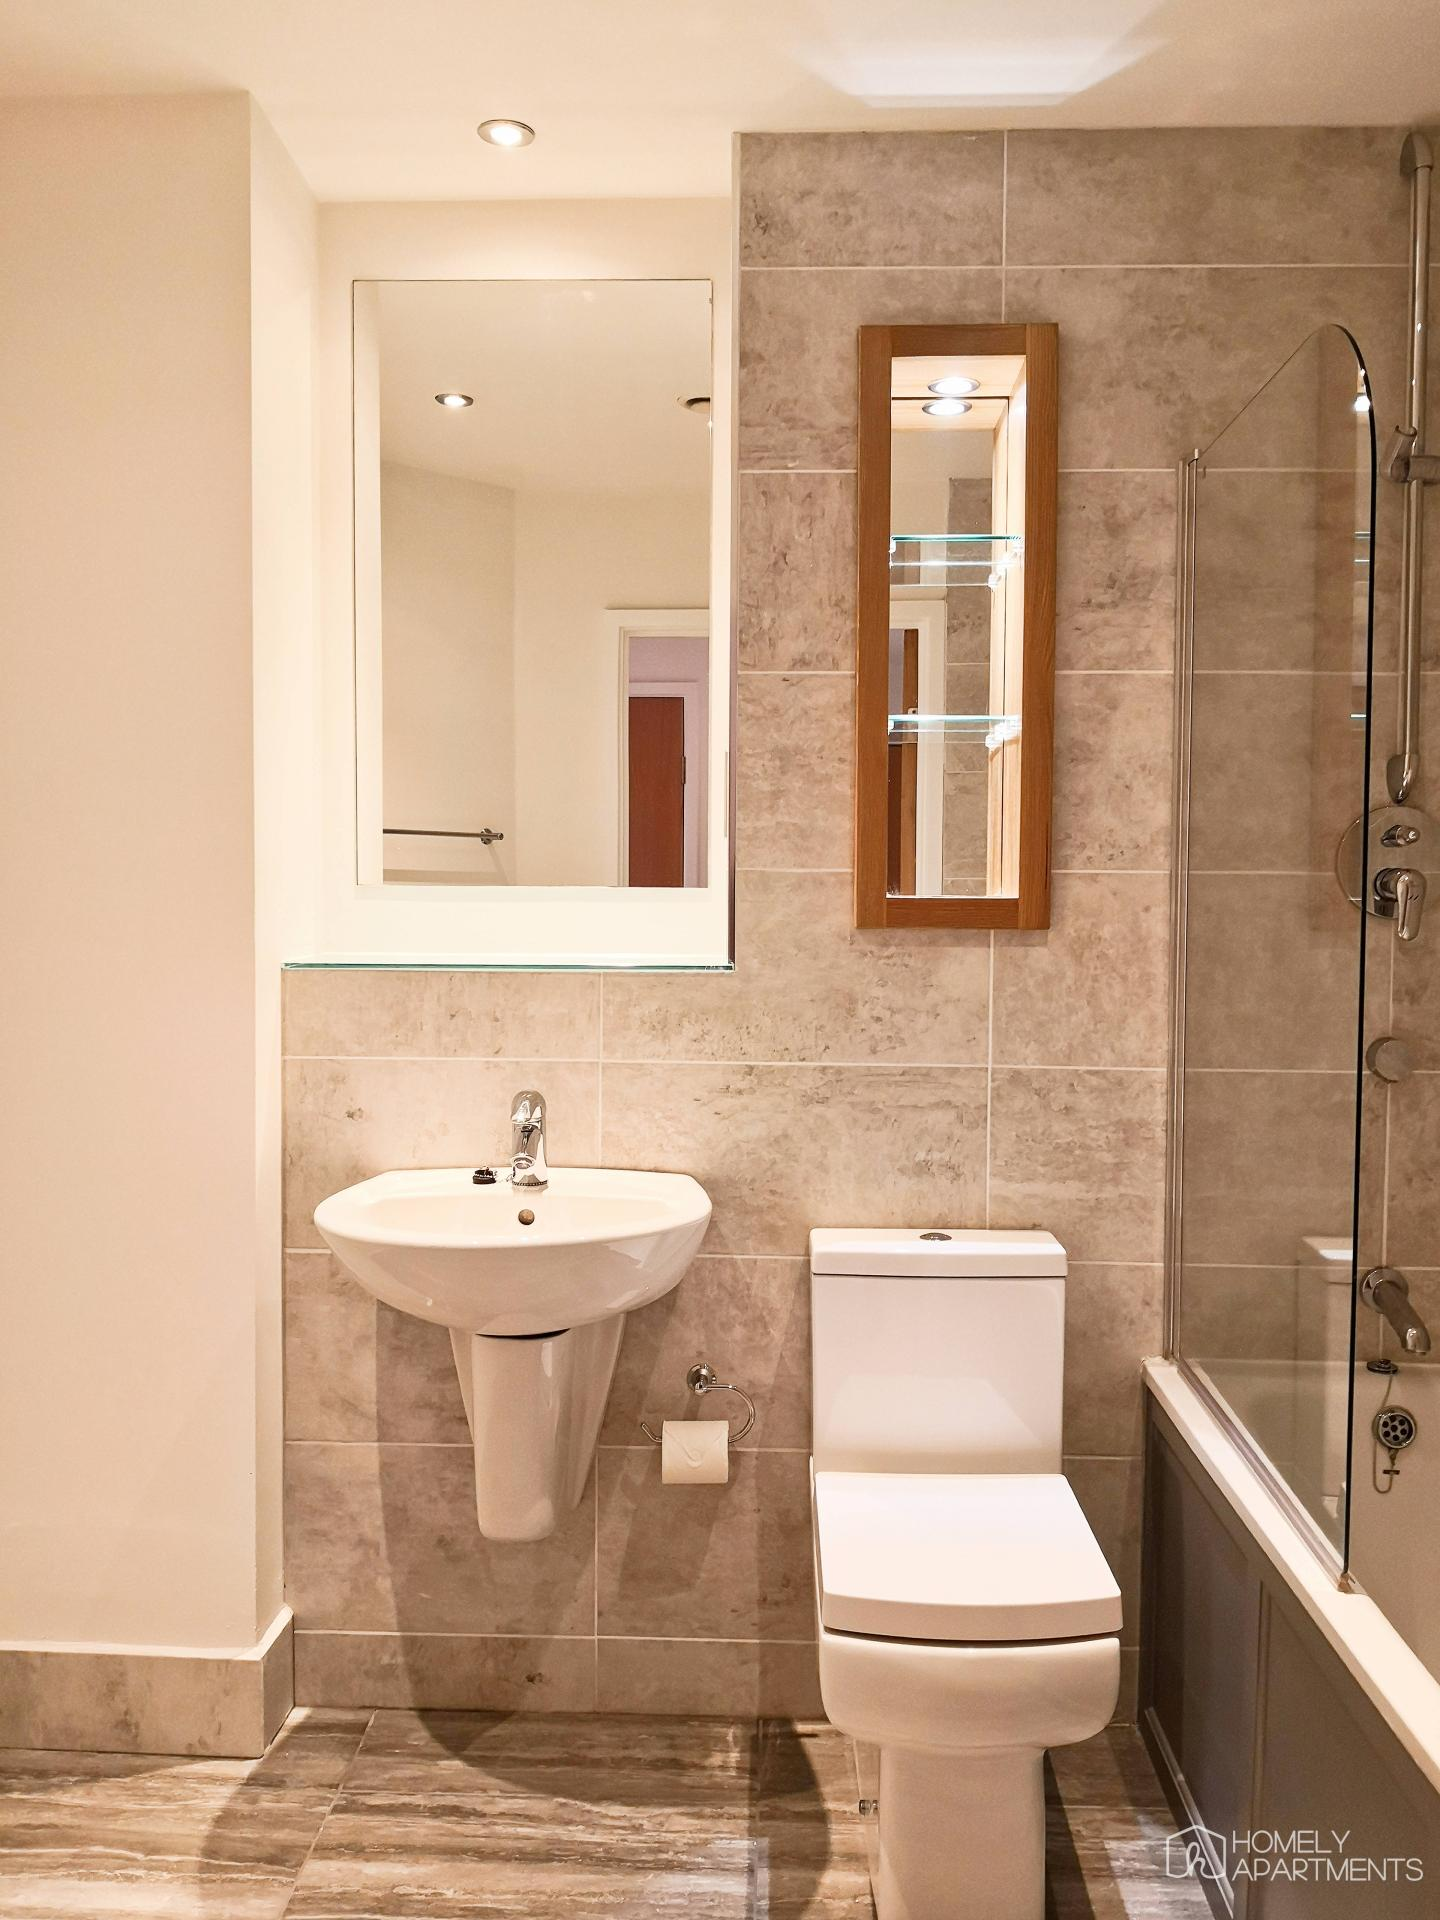 Sink at West One Serviced Apartments - Citybase Apartments